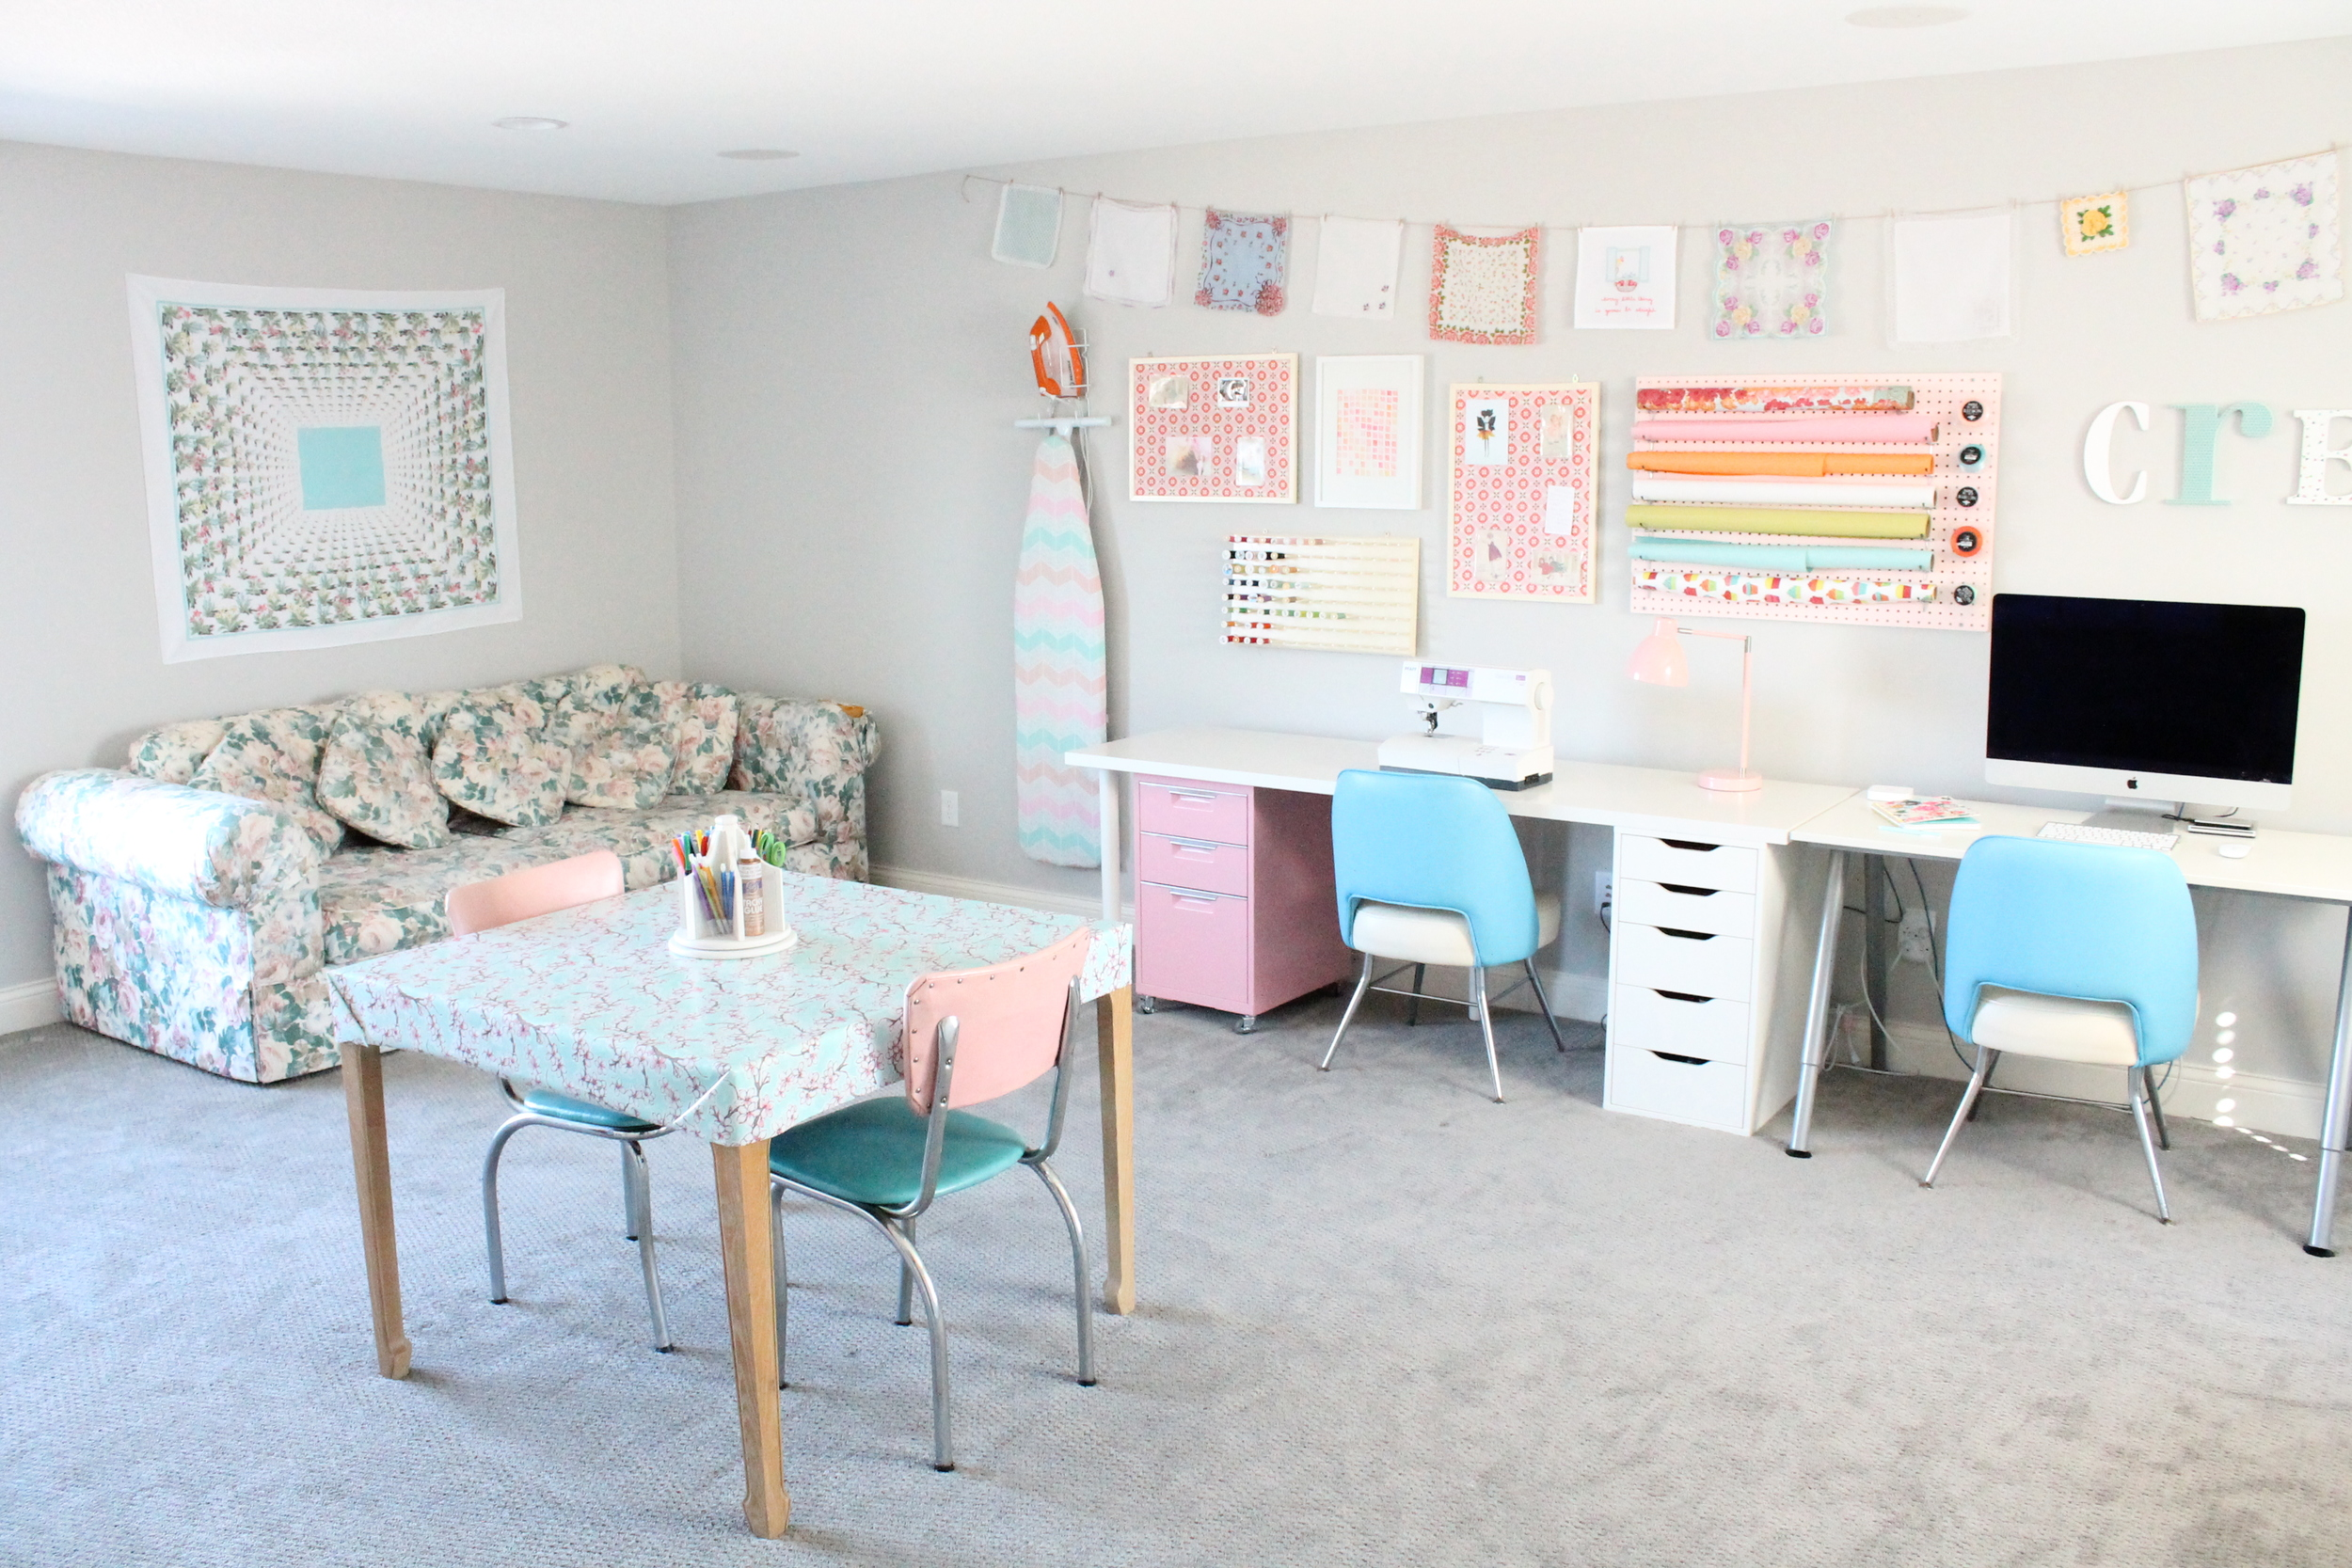 Family Craft Studio. Love how everyone in the family can share this creative space. A perfect craft room for sewing, scrapbooking or just hanging out and reading.